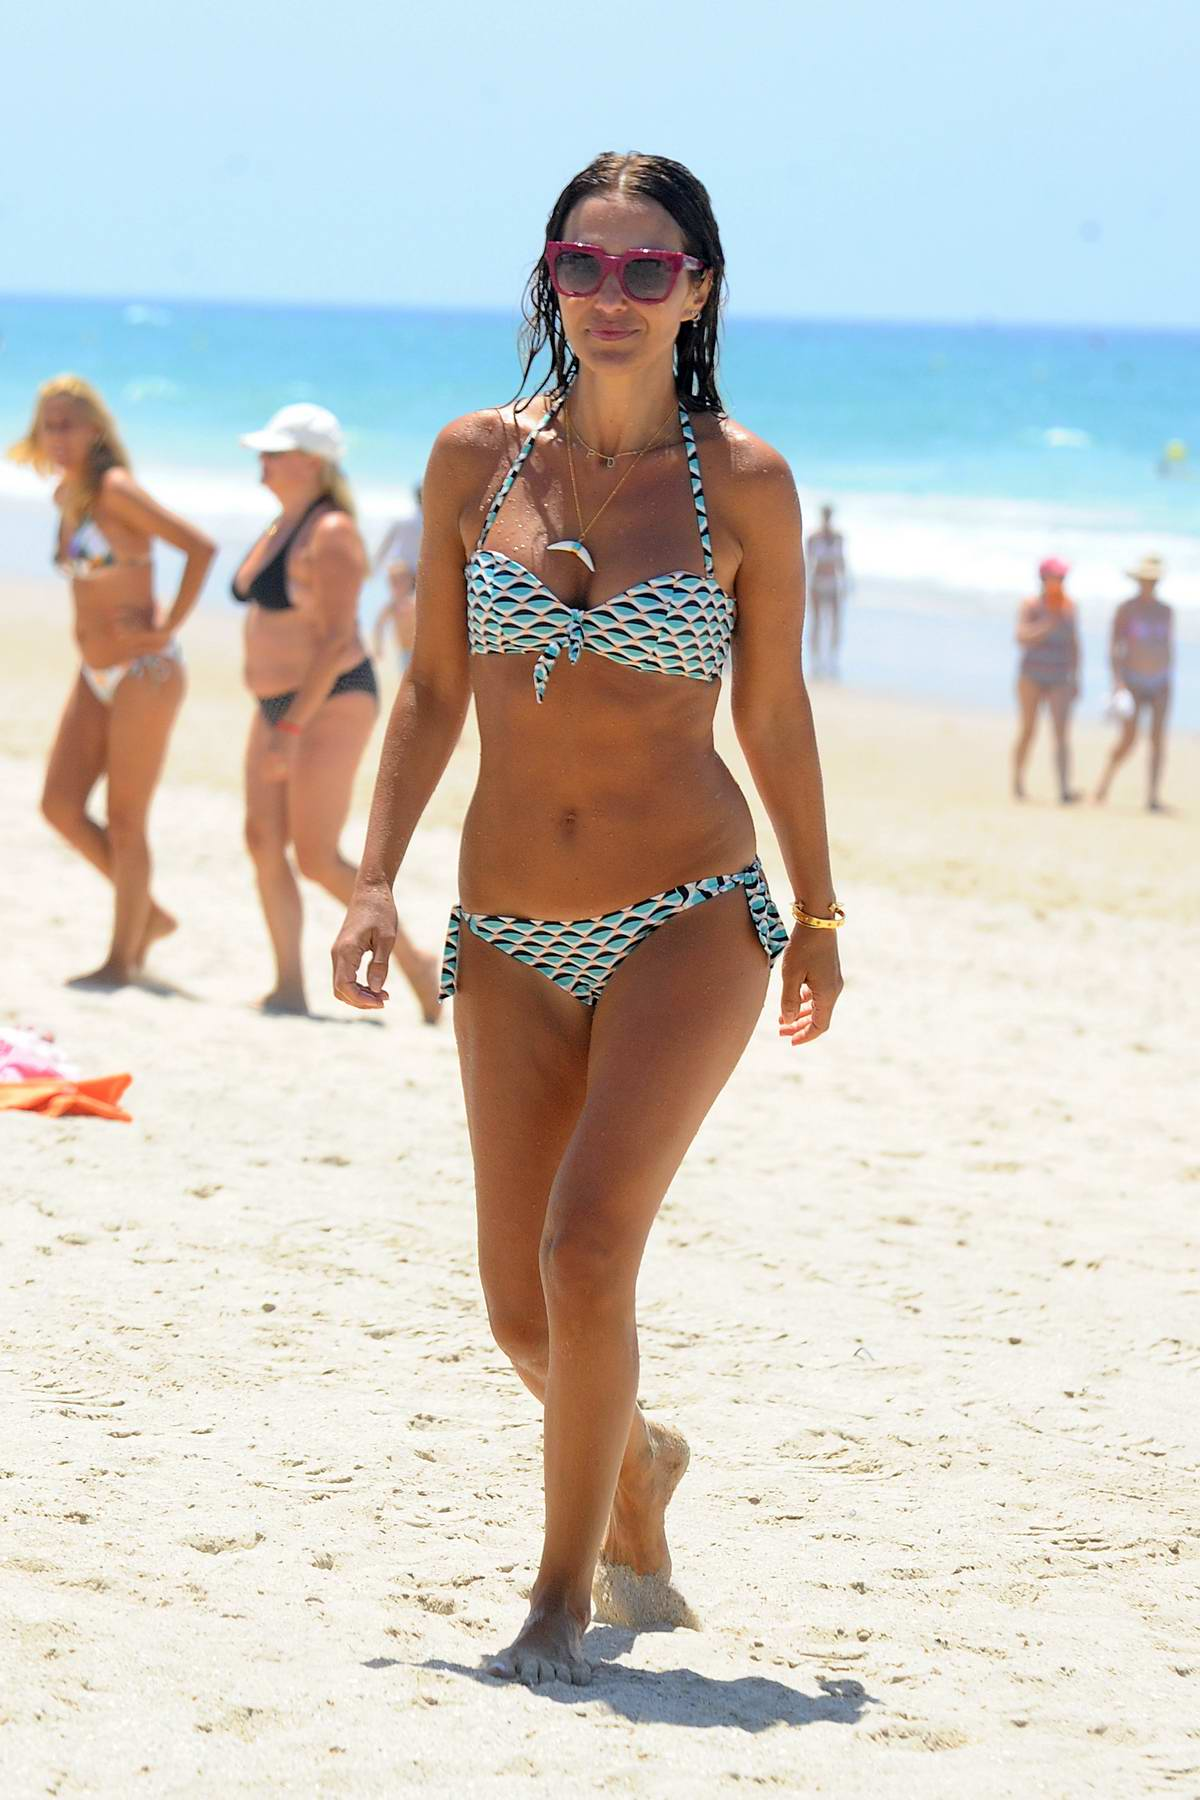 Paula Echevarria spotted in multiple bikinis at the beach in Sancti Petri, Spain